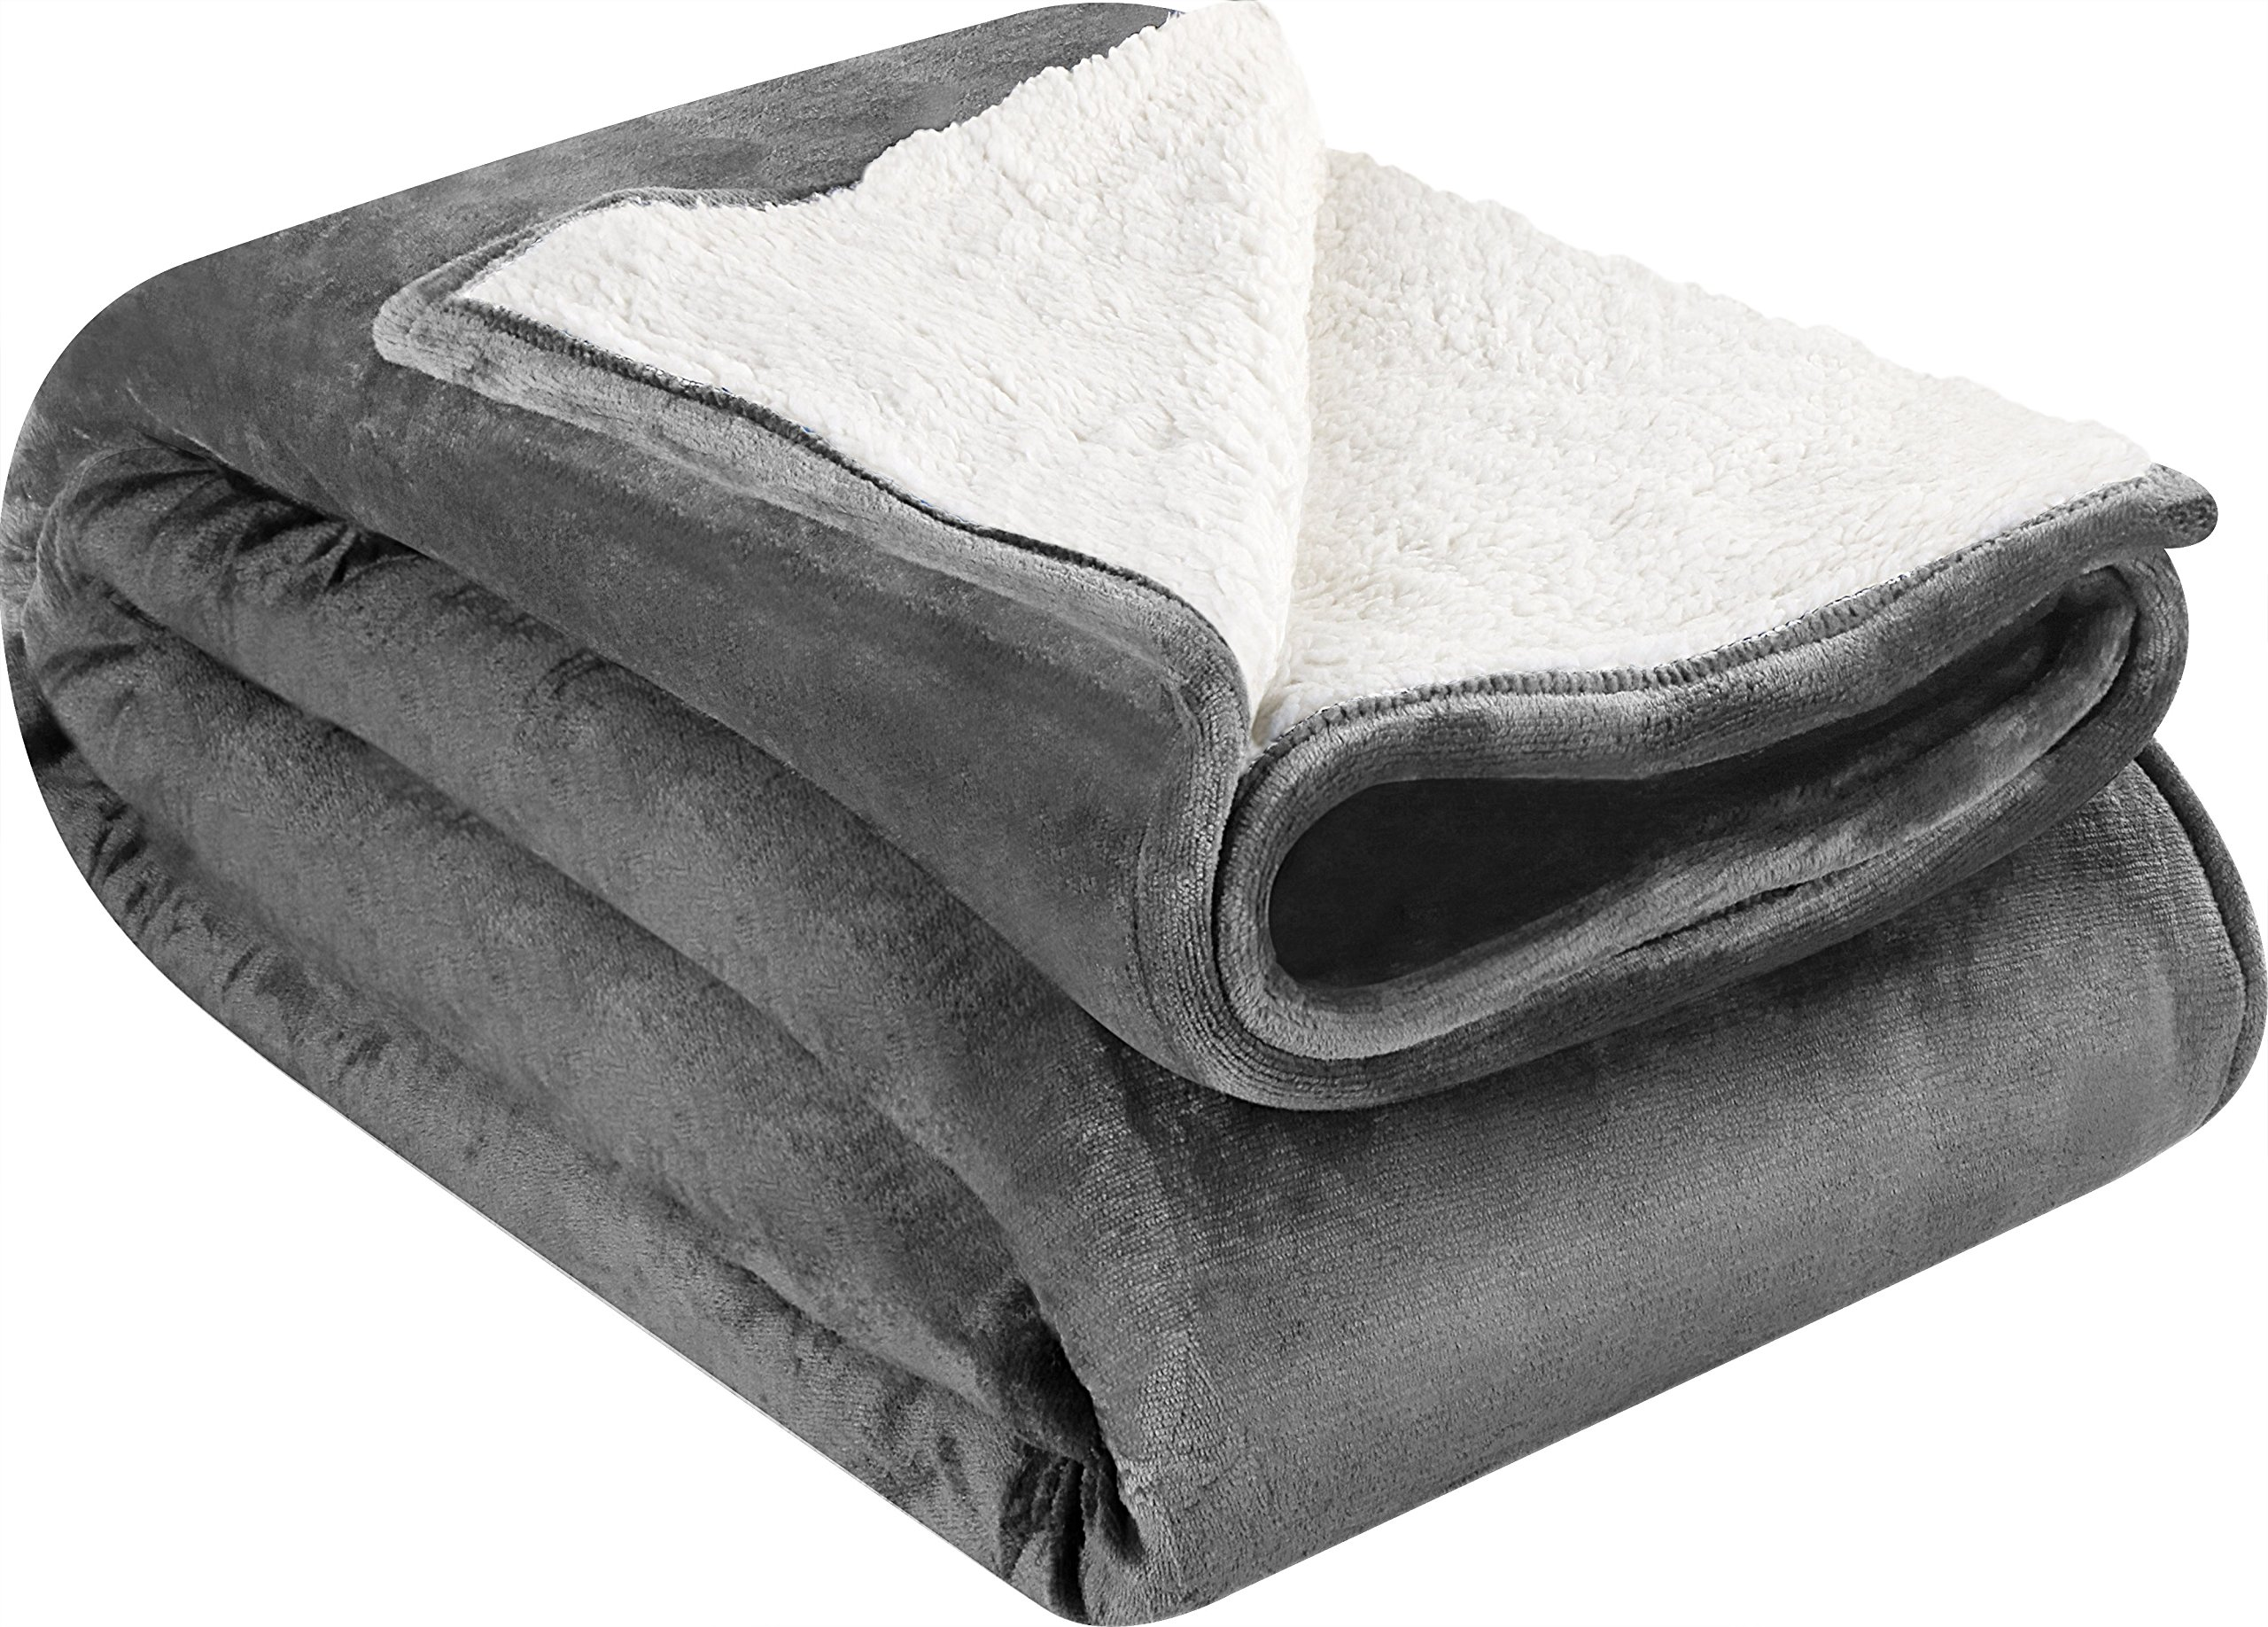 Utopia Bedding Sherpa Flannel Fleece Reversible Blankets (Grey, Queen) – Extra Soft Brush Fabric – Super Warm, Lightweight Bed/Couch Blanket – Easy Care